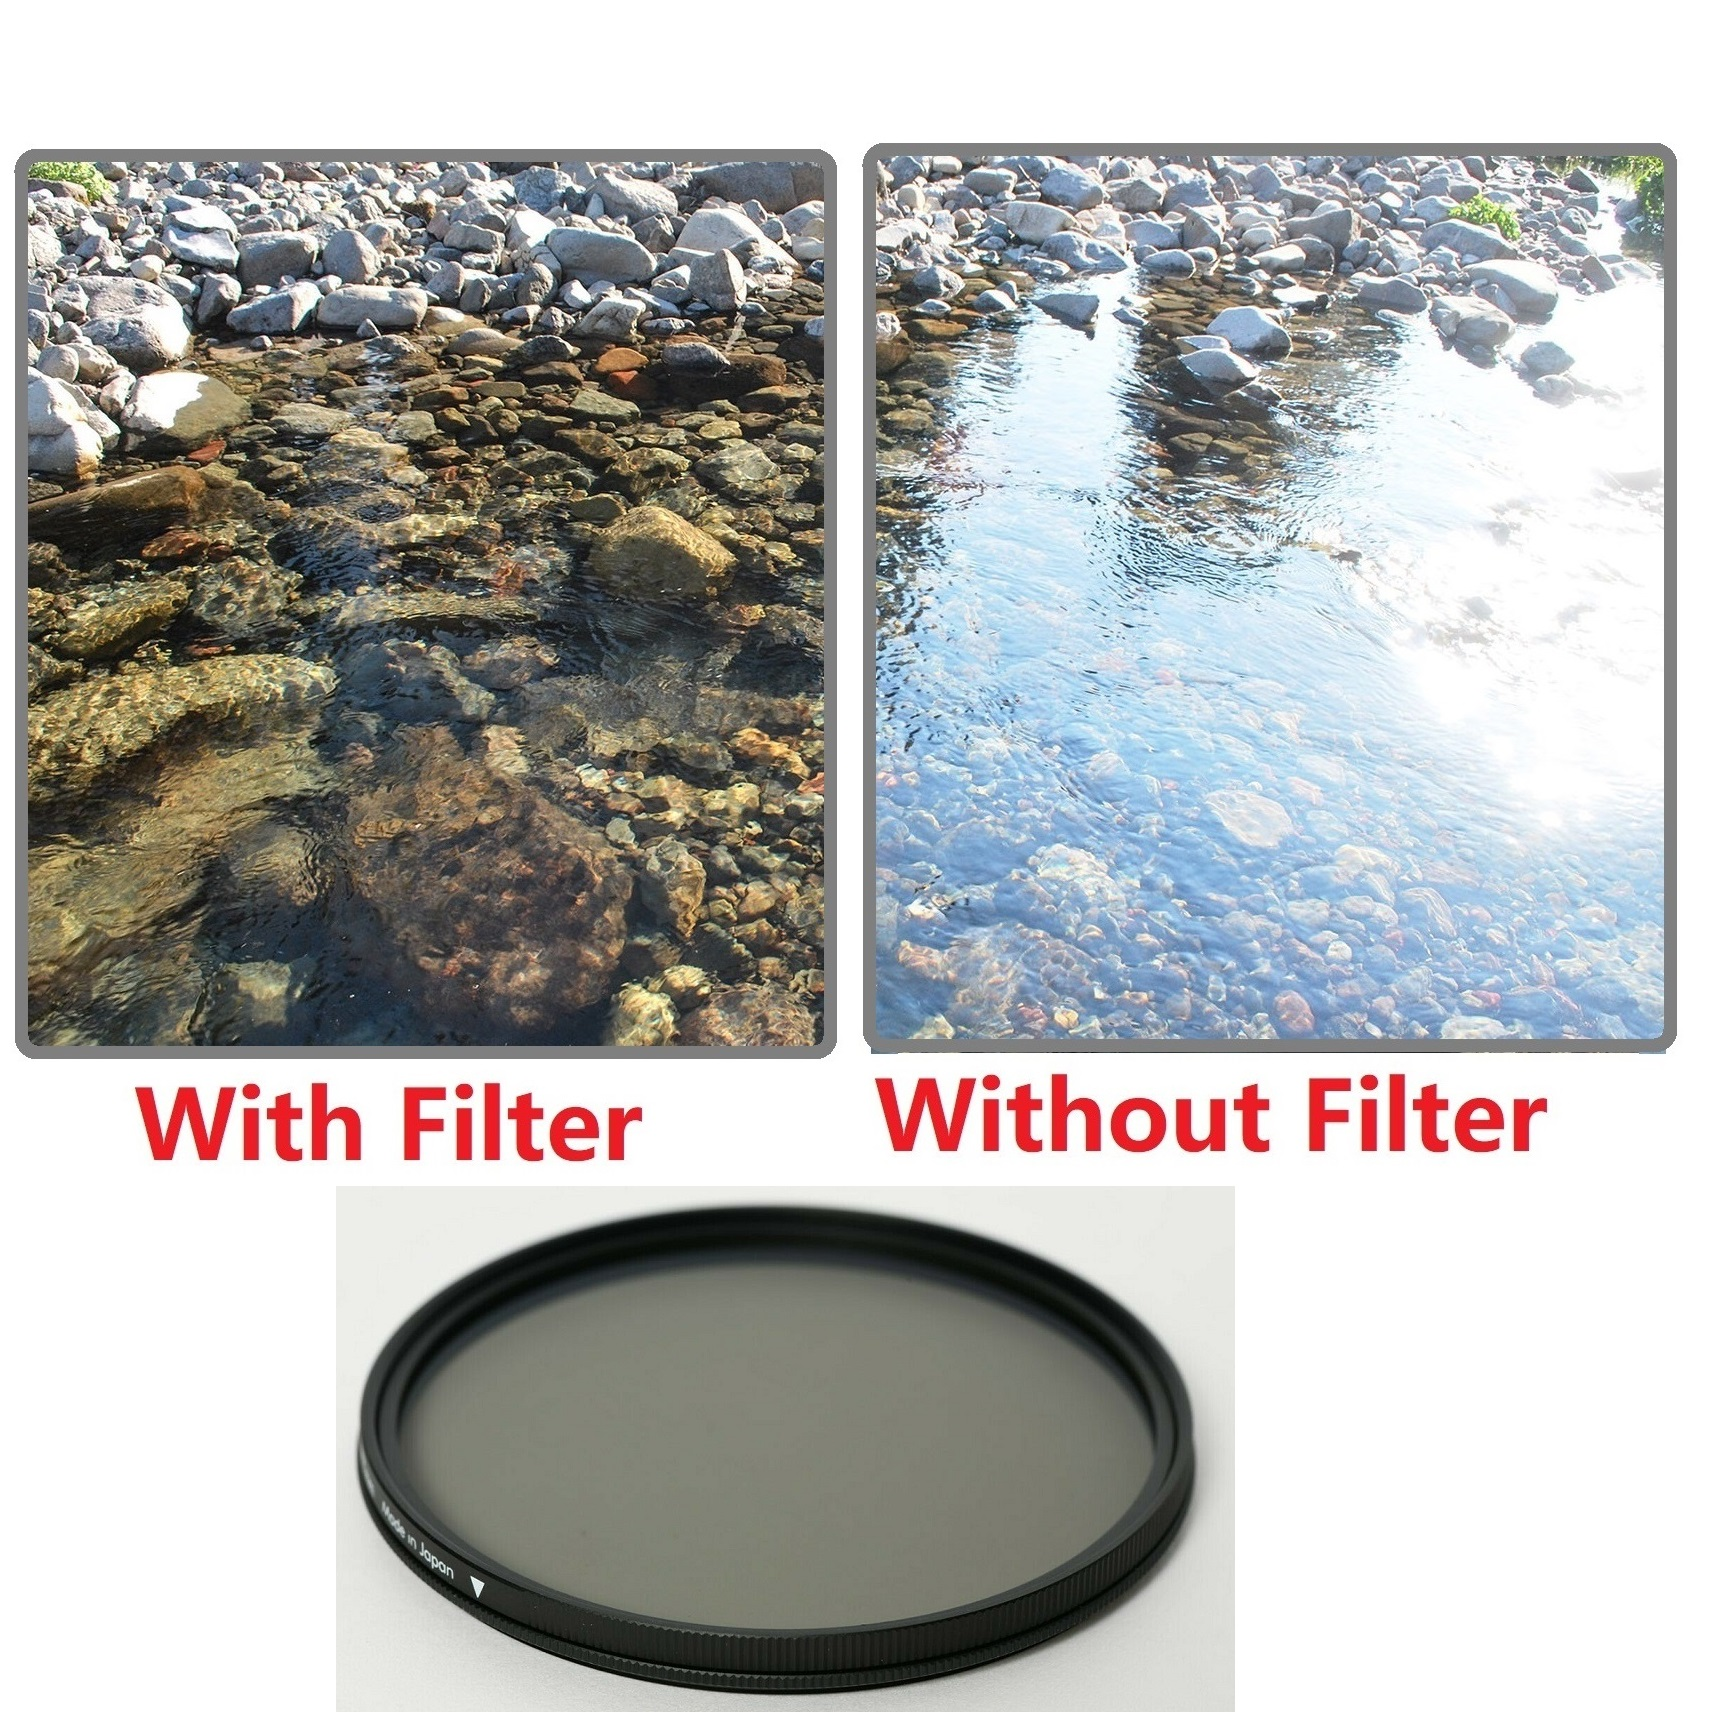 Hoya 82mm Fusion Antistatic Circular Polarizing Filters